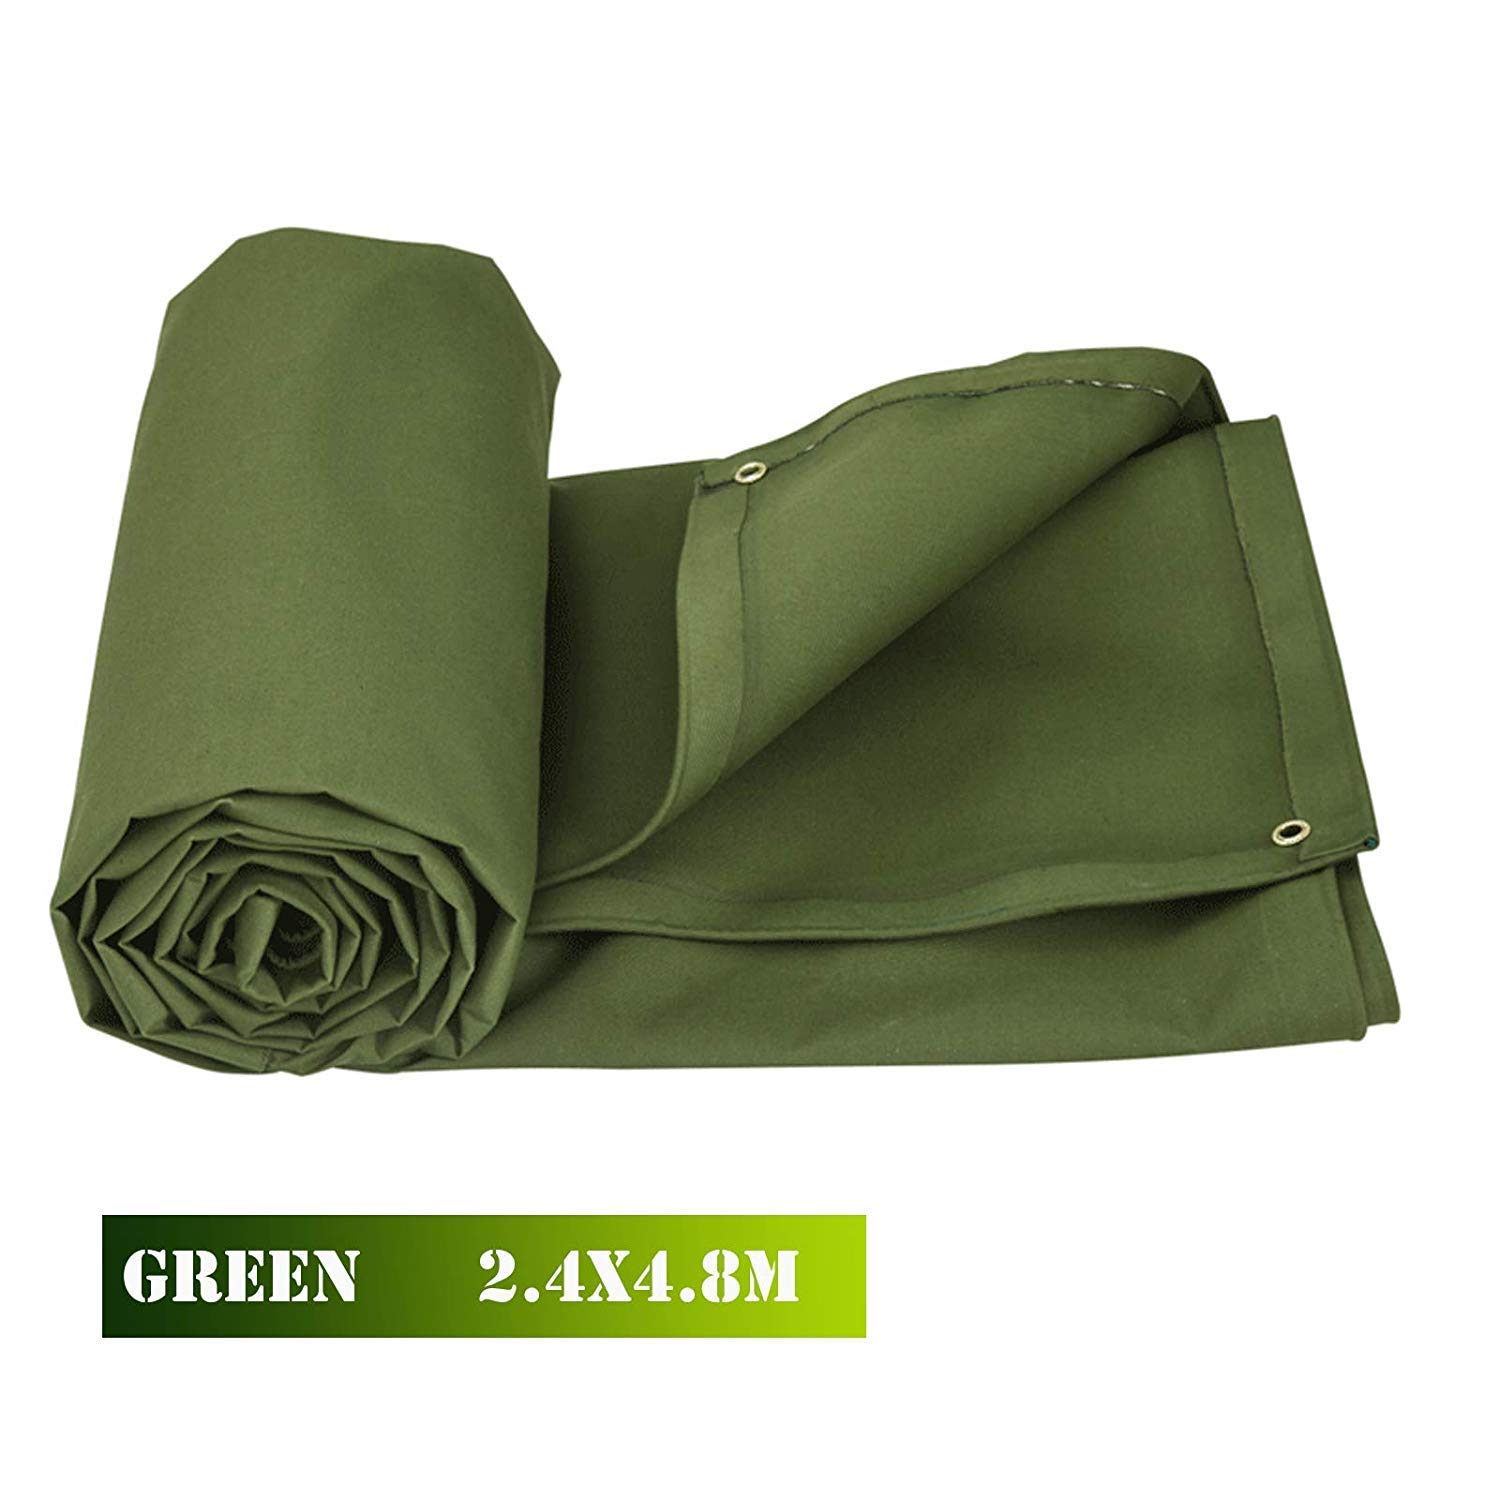 Bkisy 8ft x 16ft Olive Drab Canvas Tarp Heavy Duty 18 oz Cotton Material Tarpaulin Tarp Waterproof and Breathable for All Purpose by Bkisy